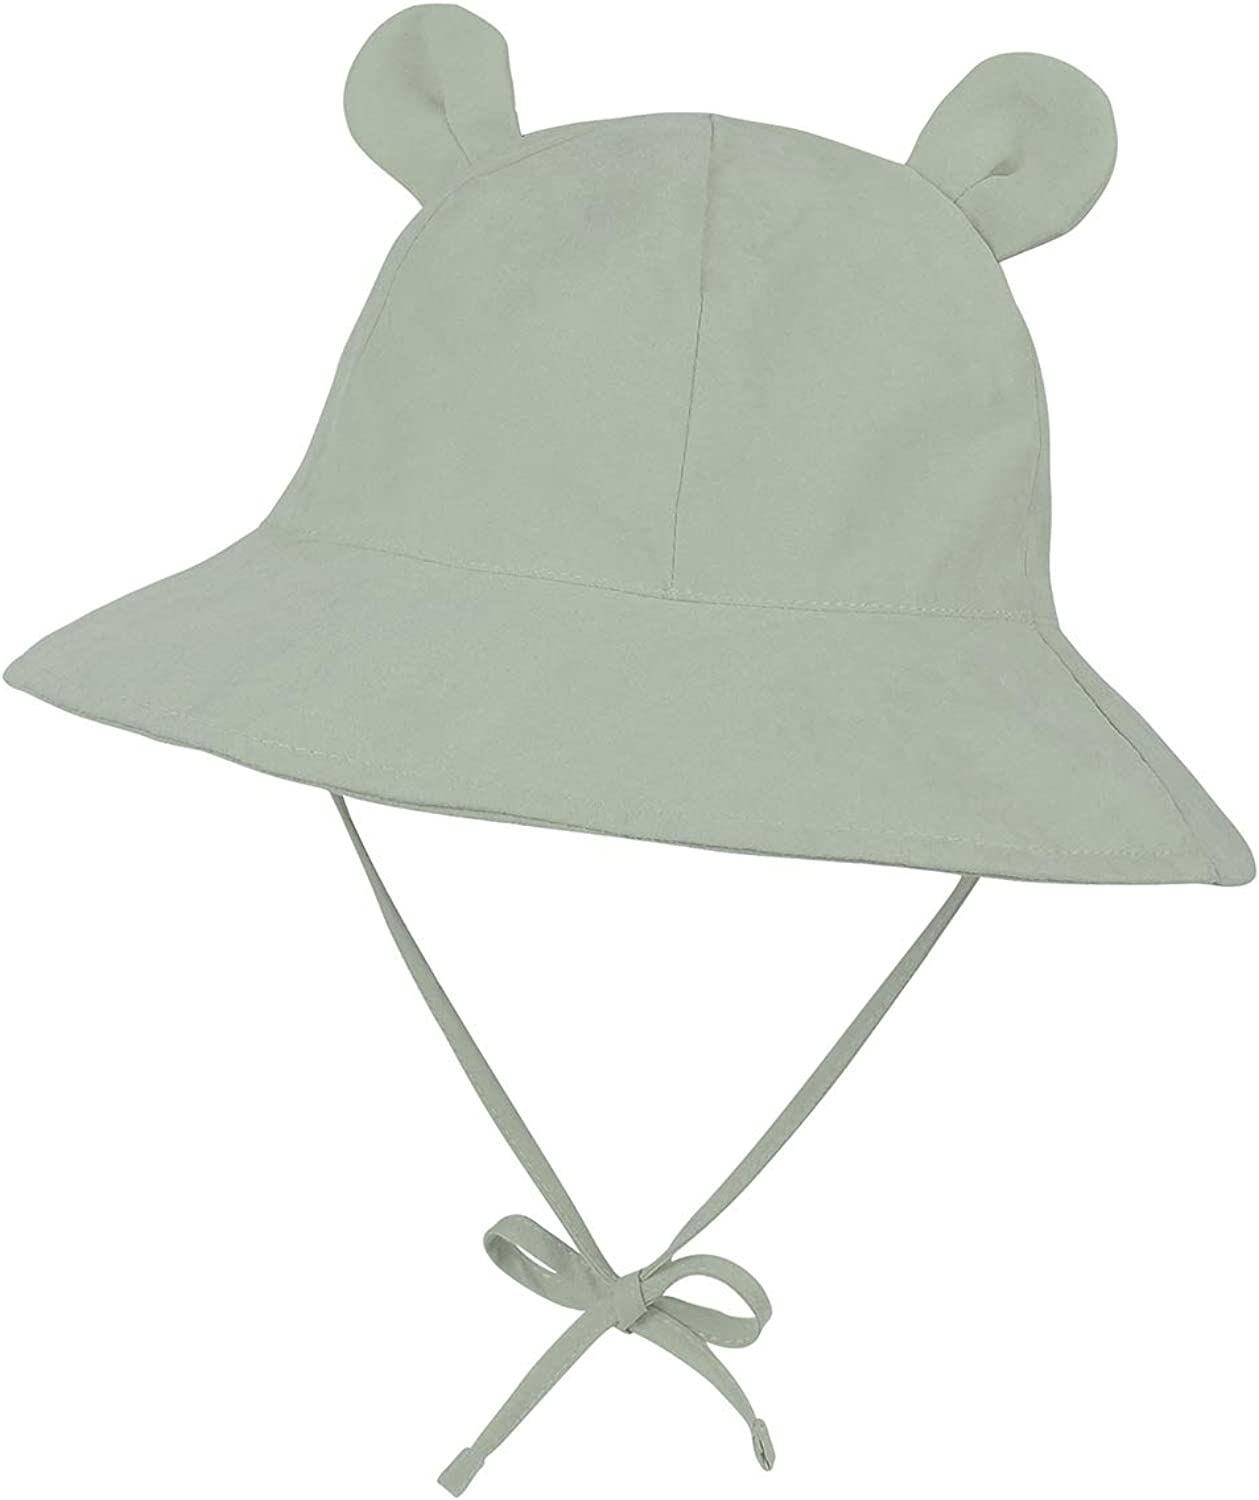 Baby Sun Hat Toddler Beach Hats UPF 50+ Wide Brim Baby Boy Girls Summer Play Hat Infant Sun Protection Hats with Bear Ears